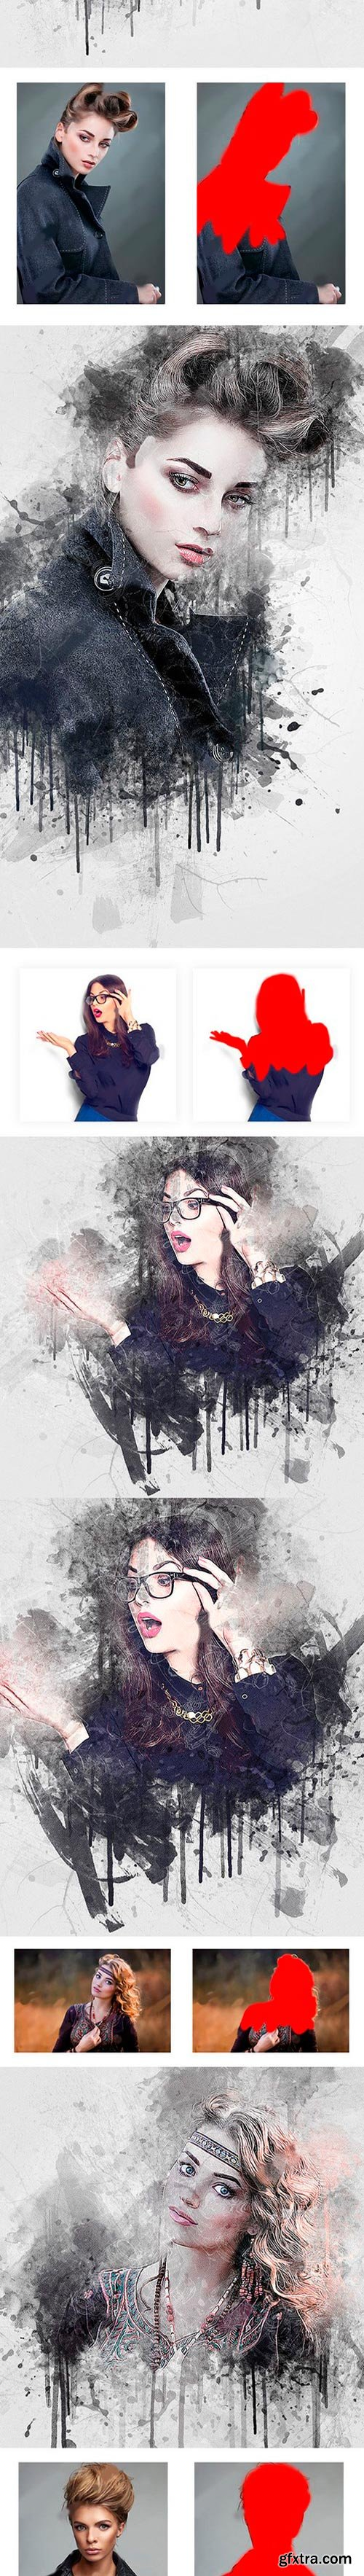 Graphicriver - Imprassion Ink Photoshop Action 21285770